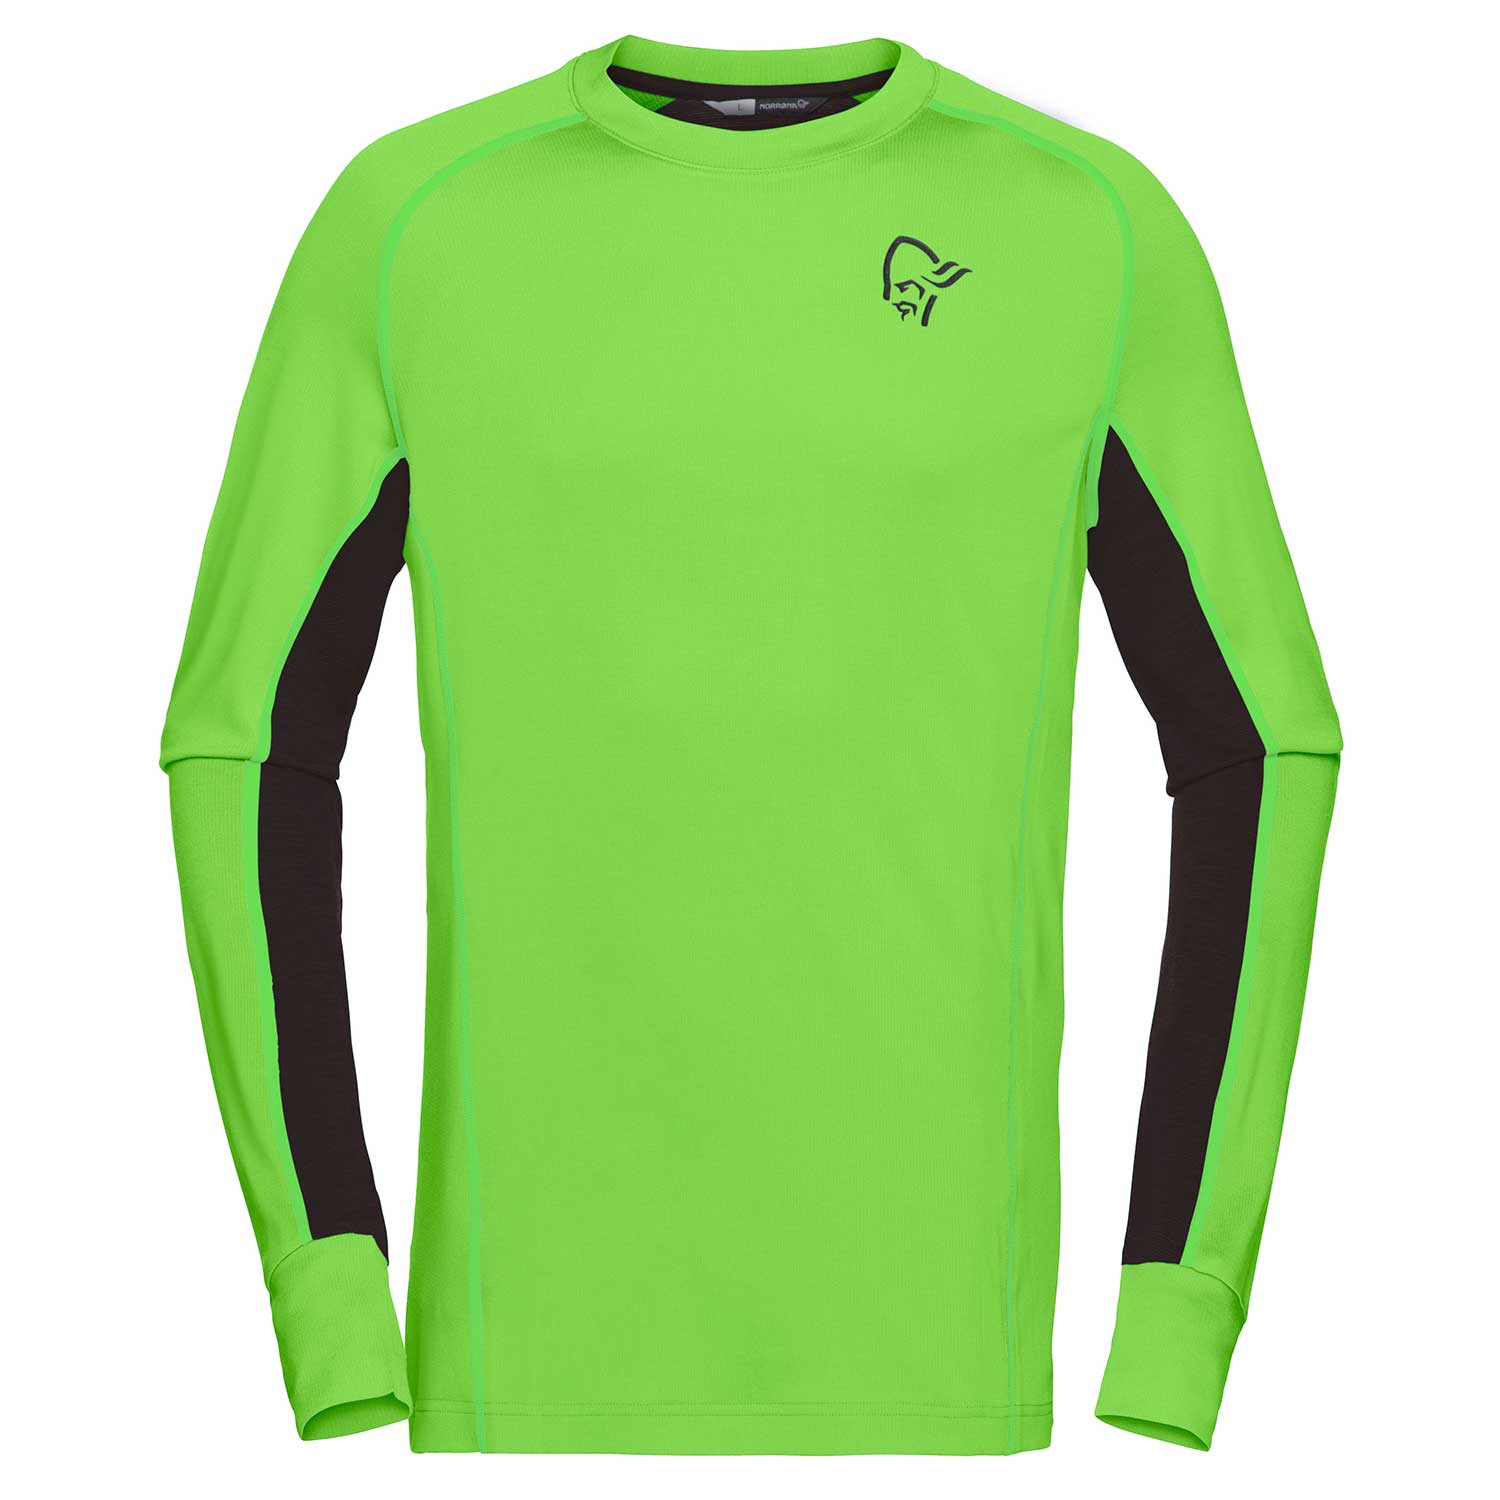 fjora Powerwool Long sleeve (M)